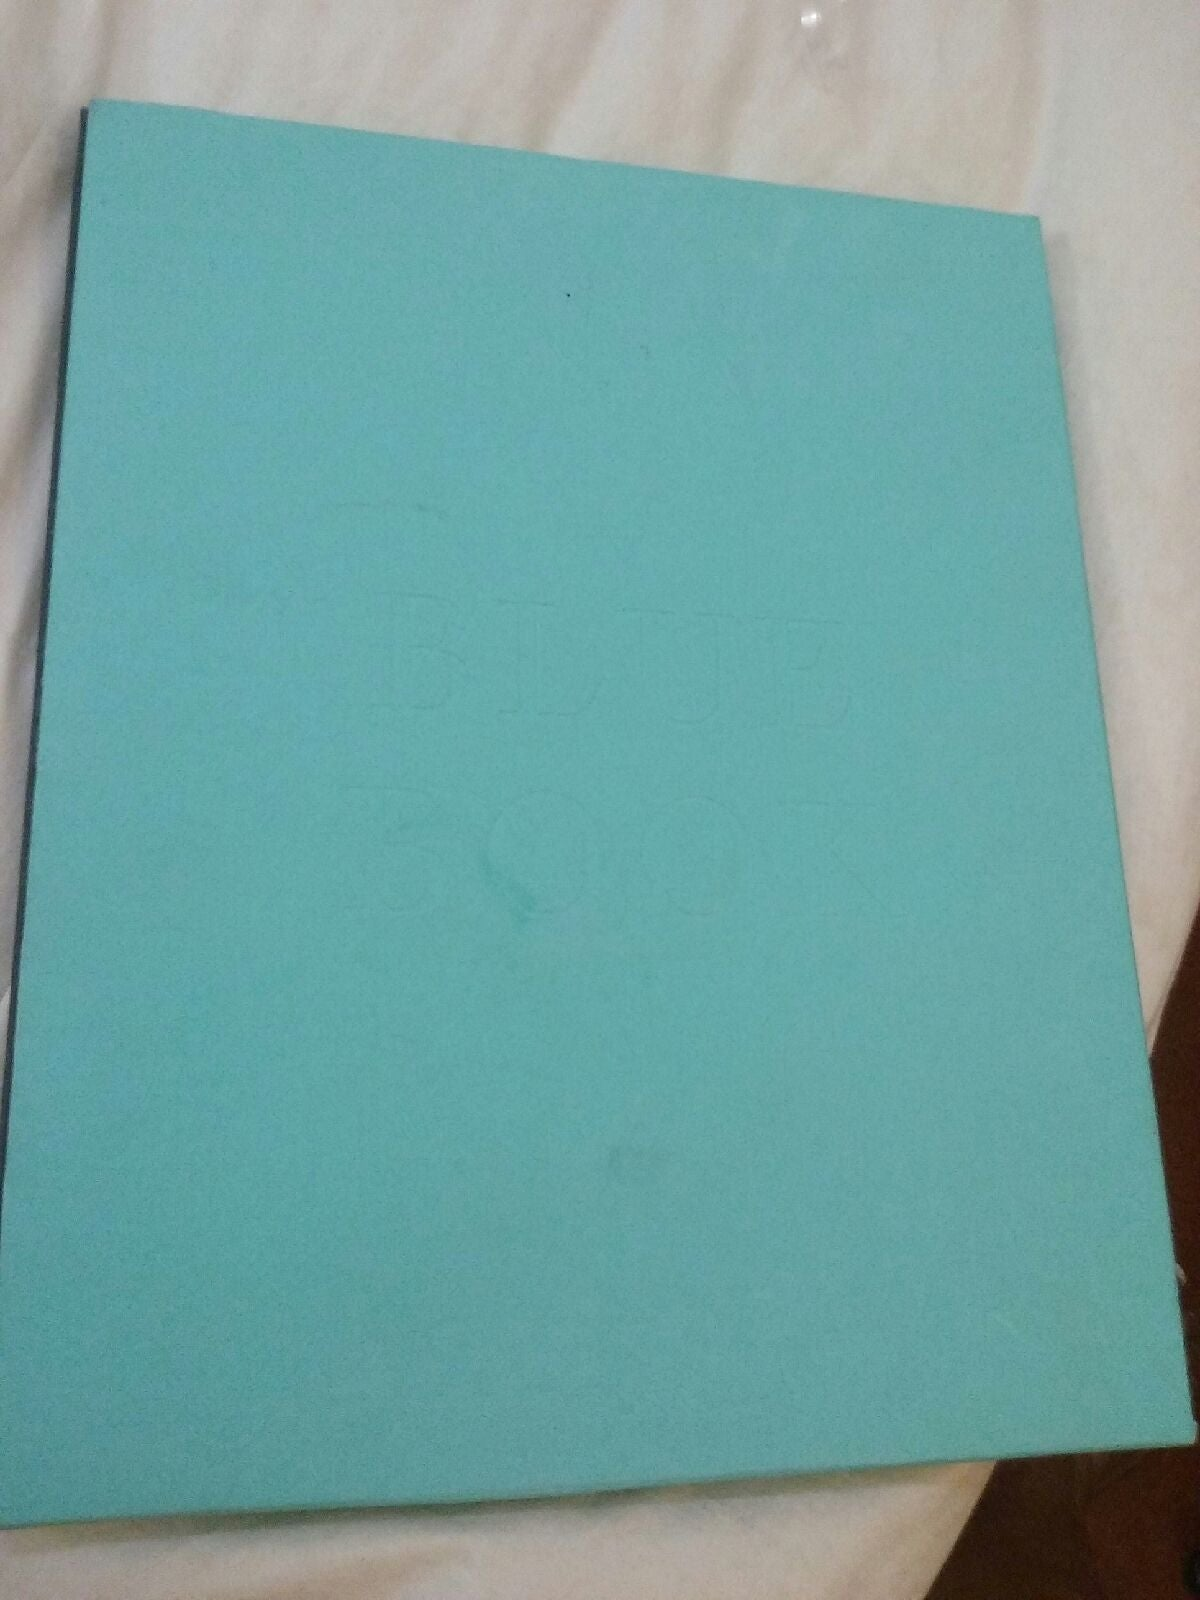 Tiffany The Art Of The Wild Blue Book 17